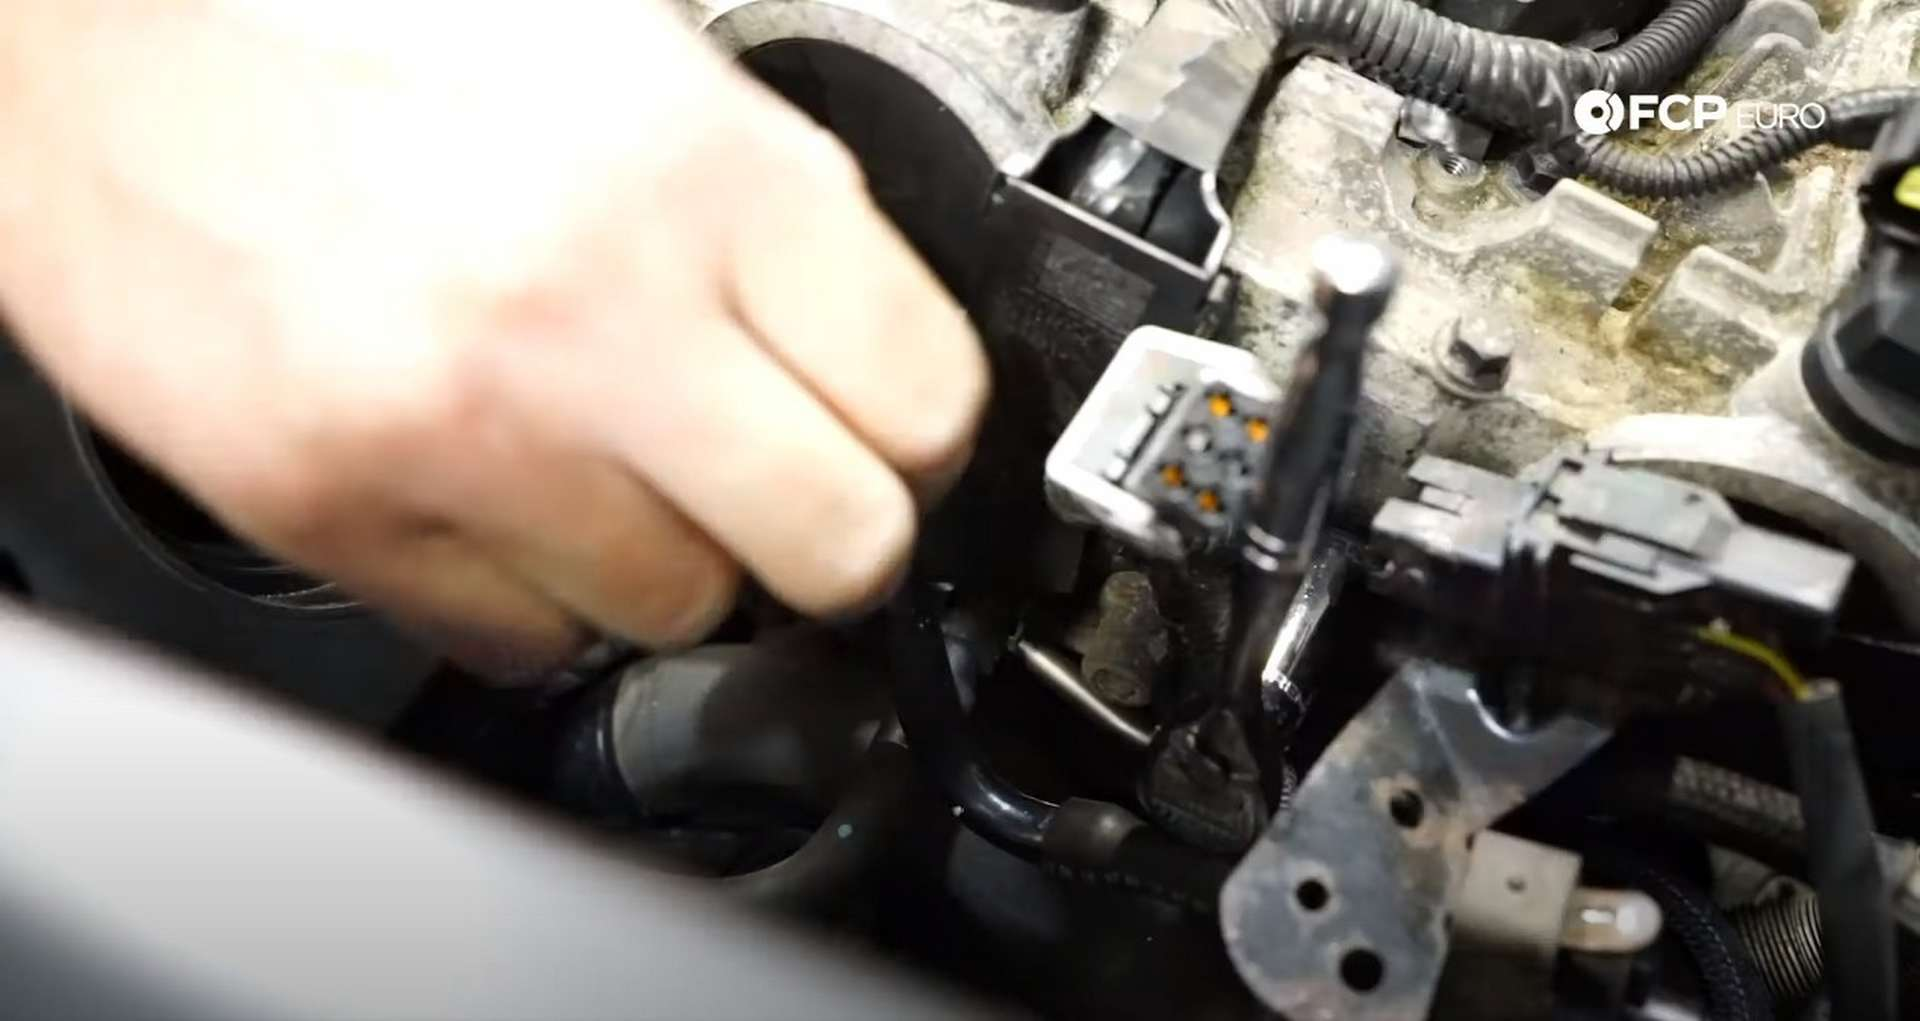 DIY Volvo P1 Water Pump Replacement removing the 13mm bolt